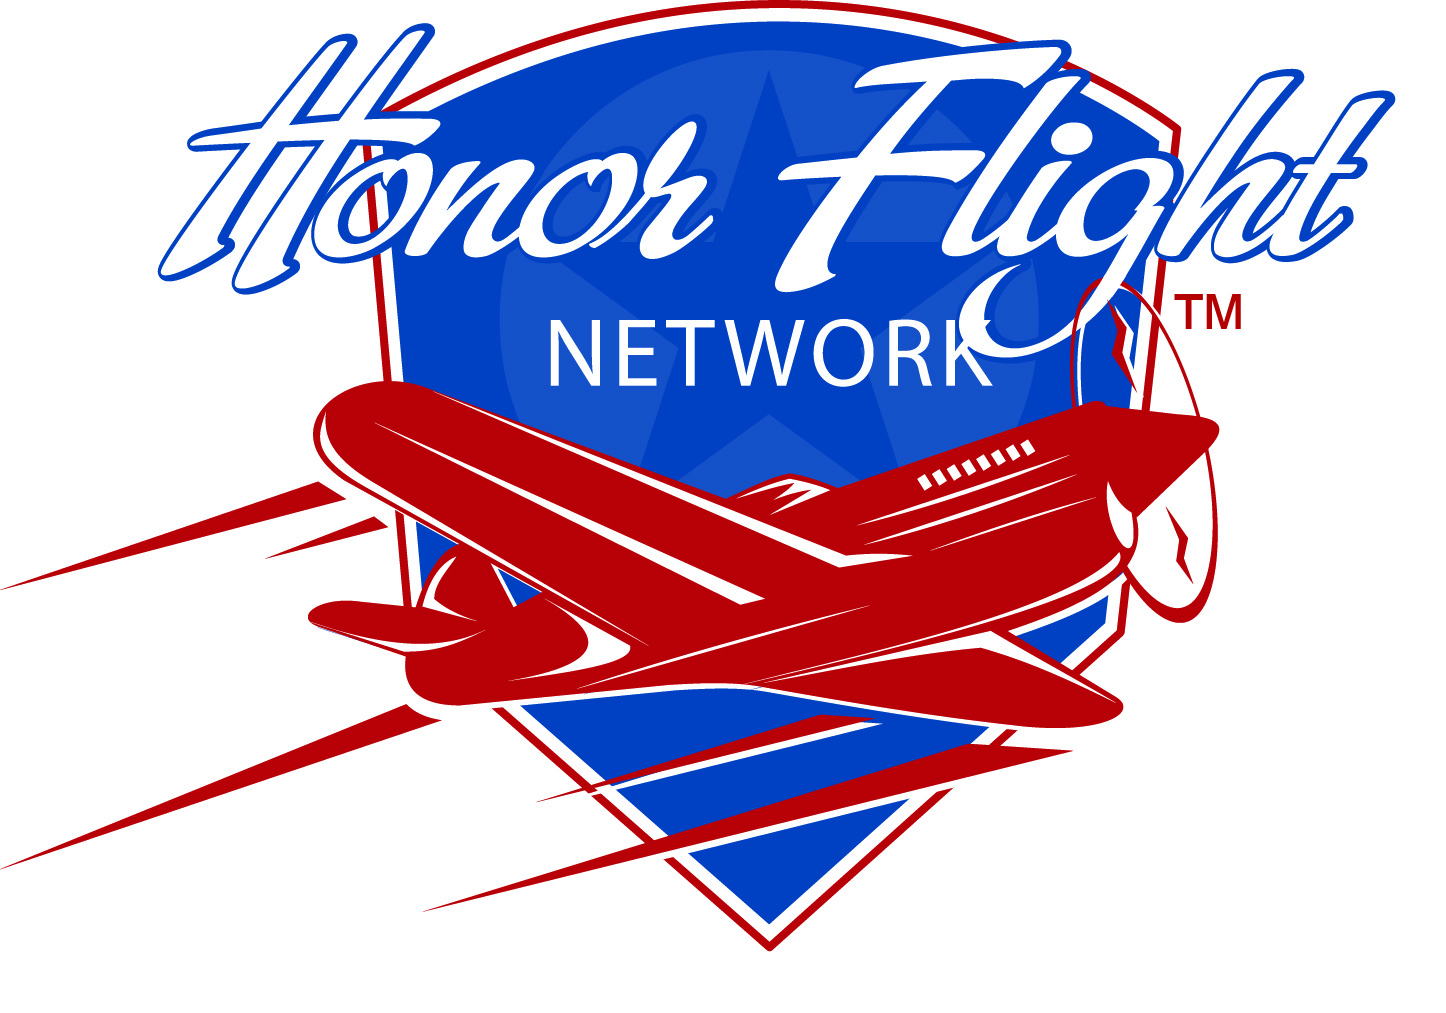 The Honor Flight Network